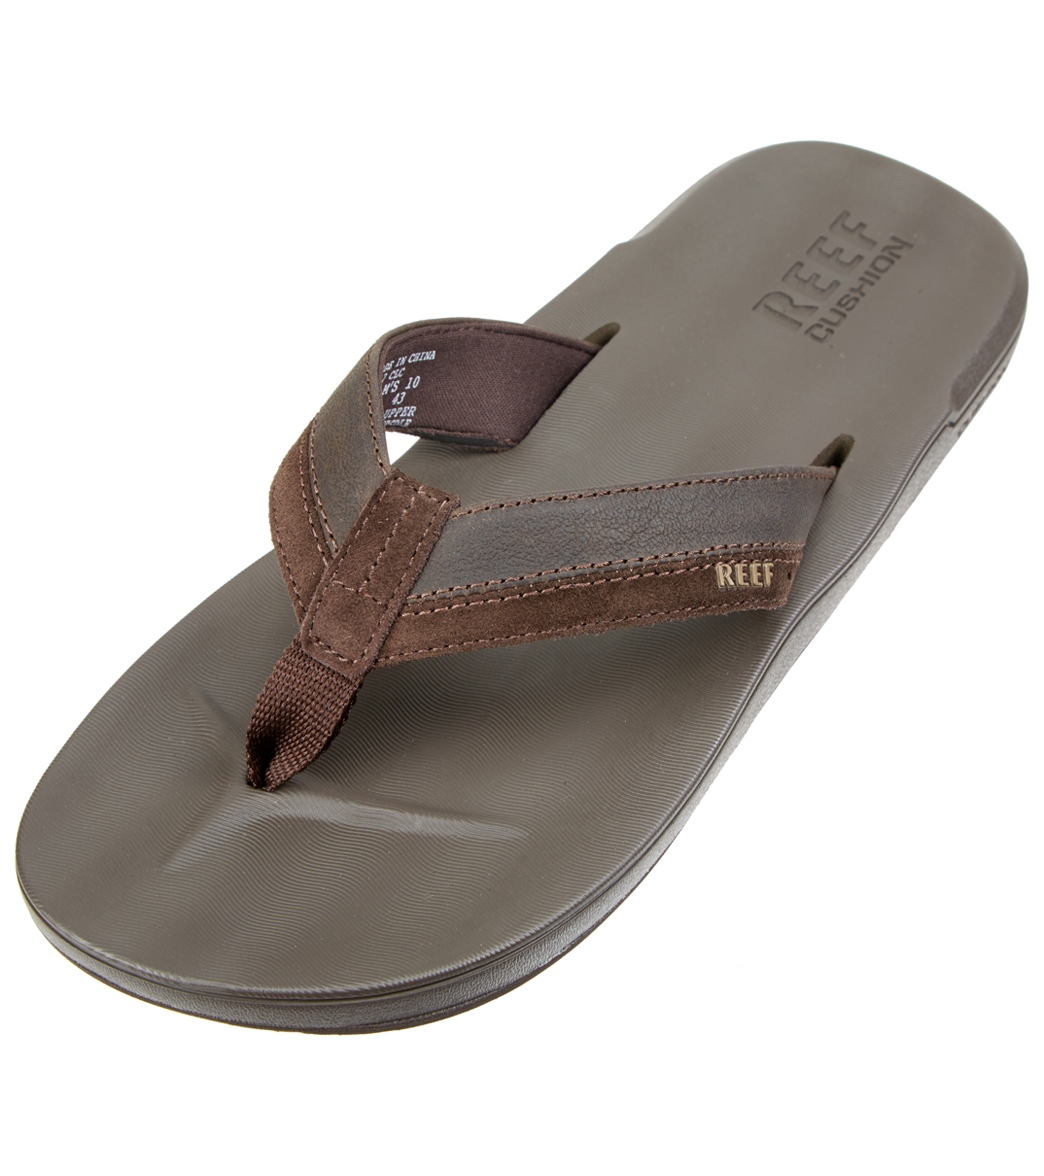 eb9b94eb55f0 Reef Men s Contour Cushion LE Flip Flop at SwimOutlet.com